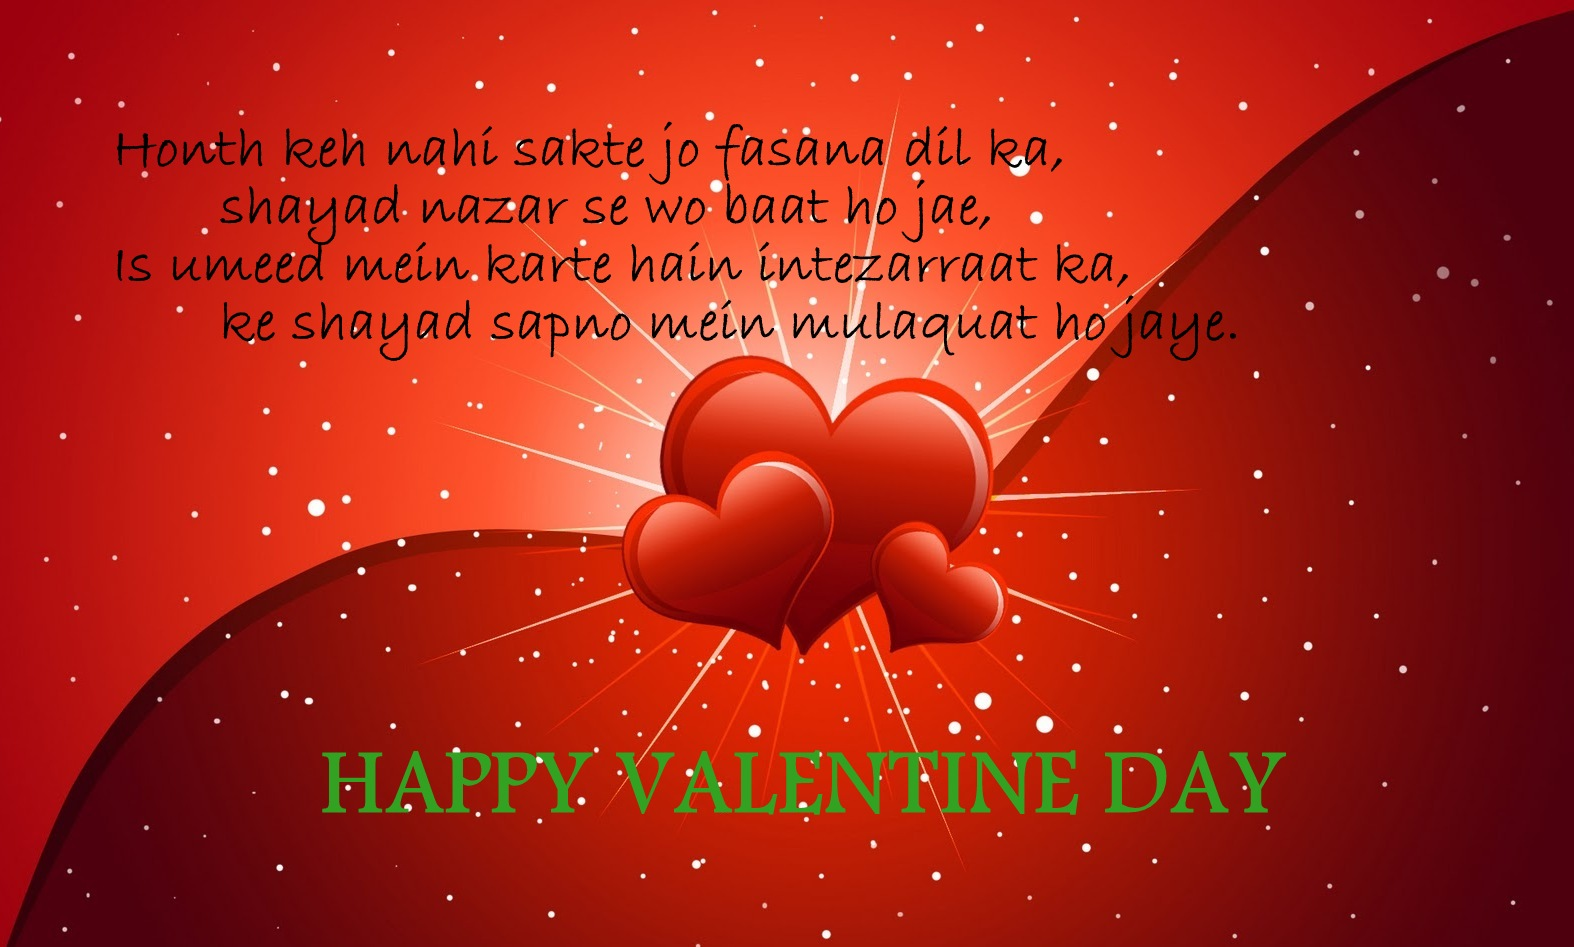 Valentines Day Quotes For Girlfriend Valentine S Day Messages For Boyfriend In Marathi  Thin Blog